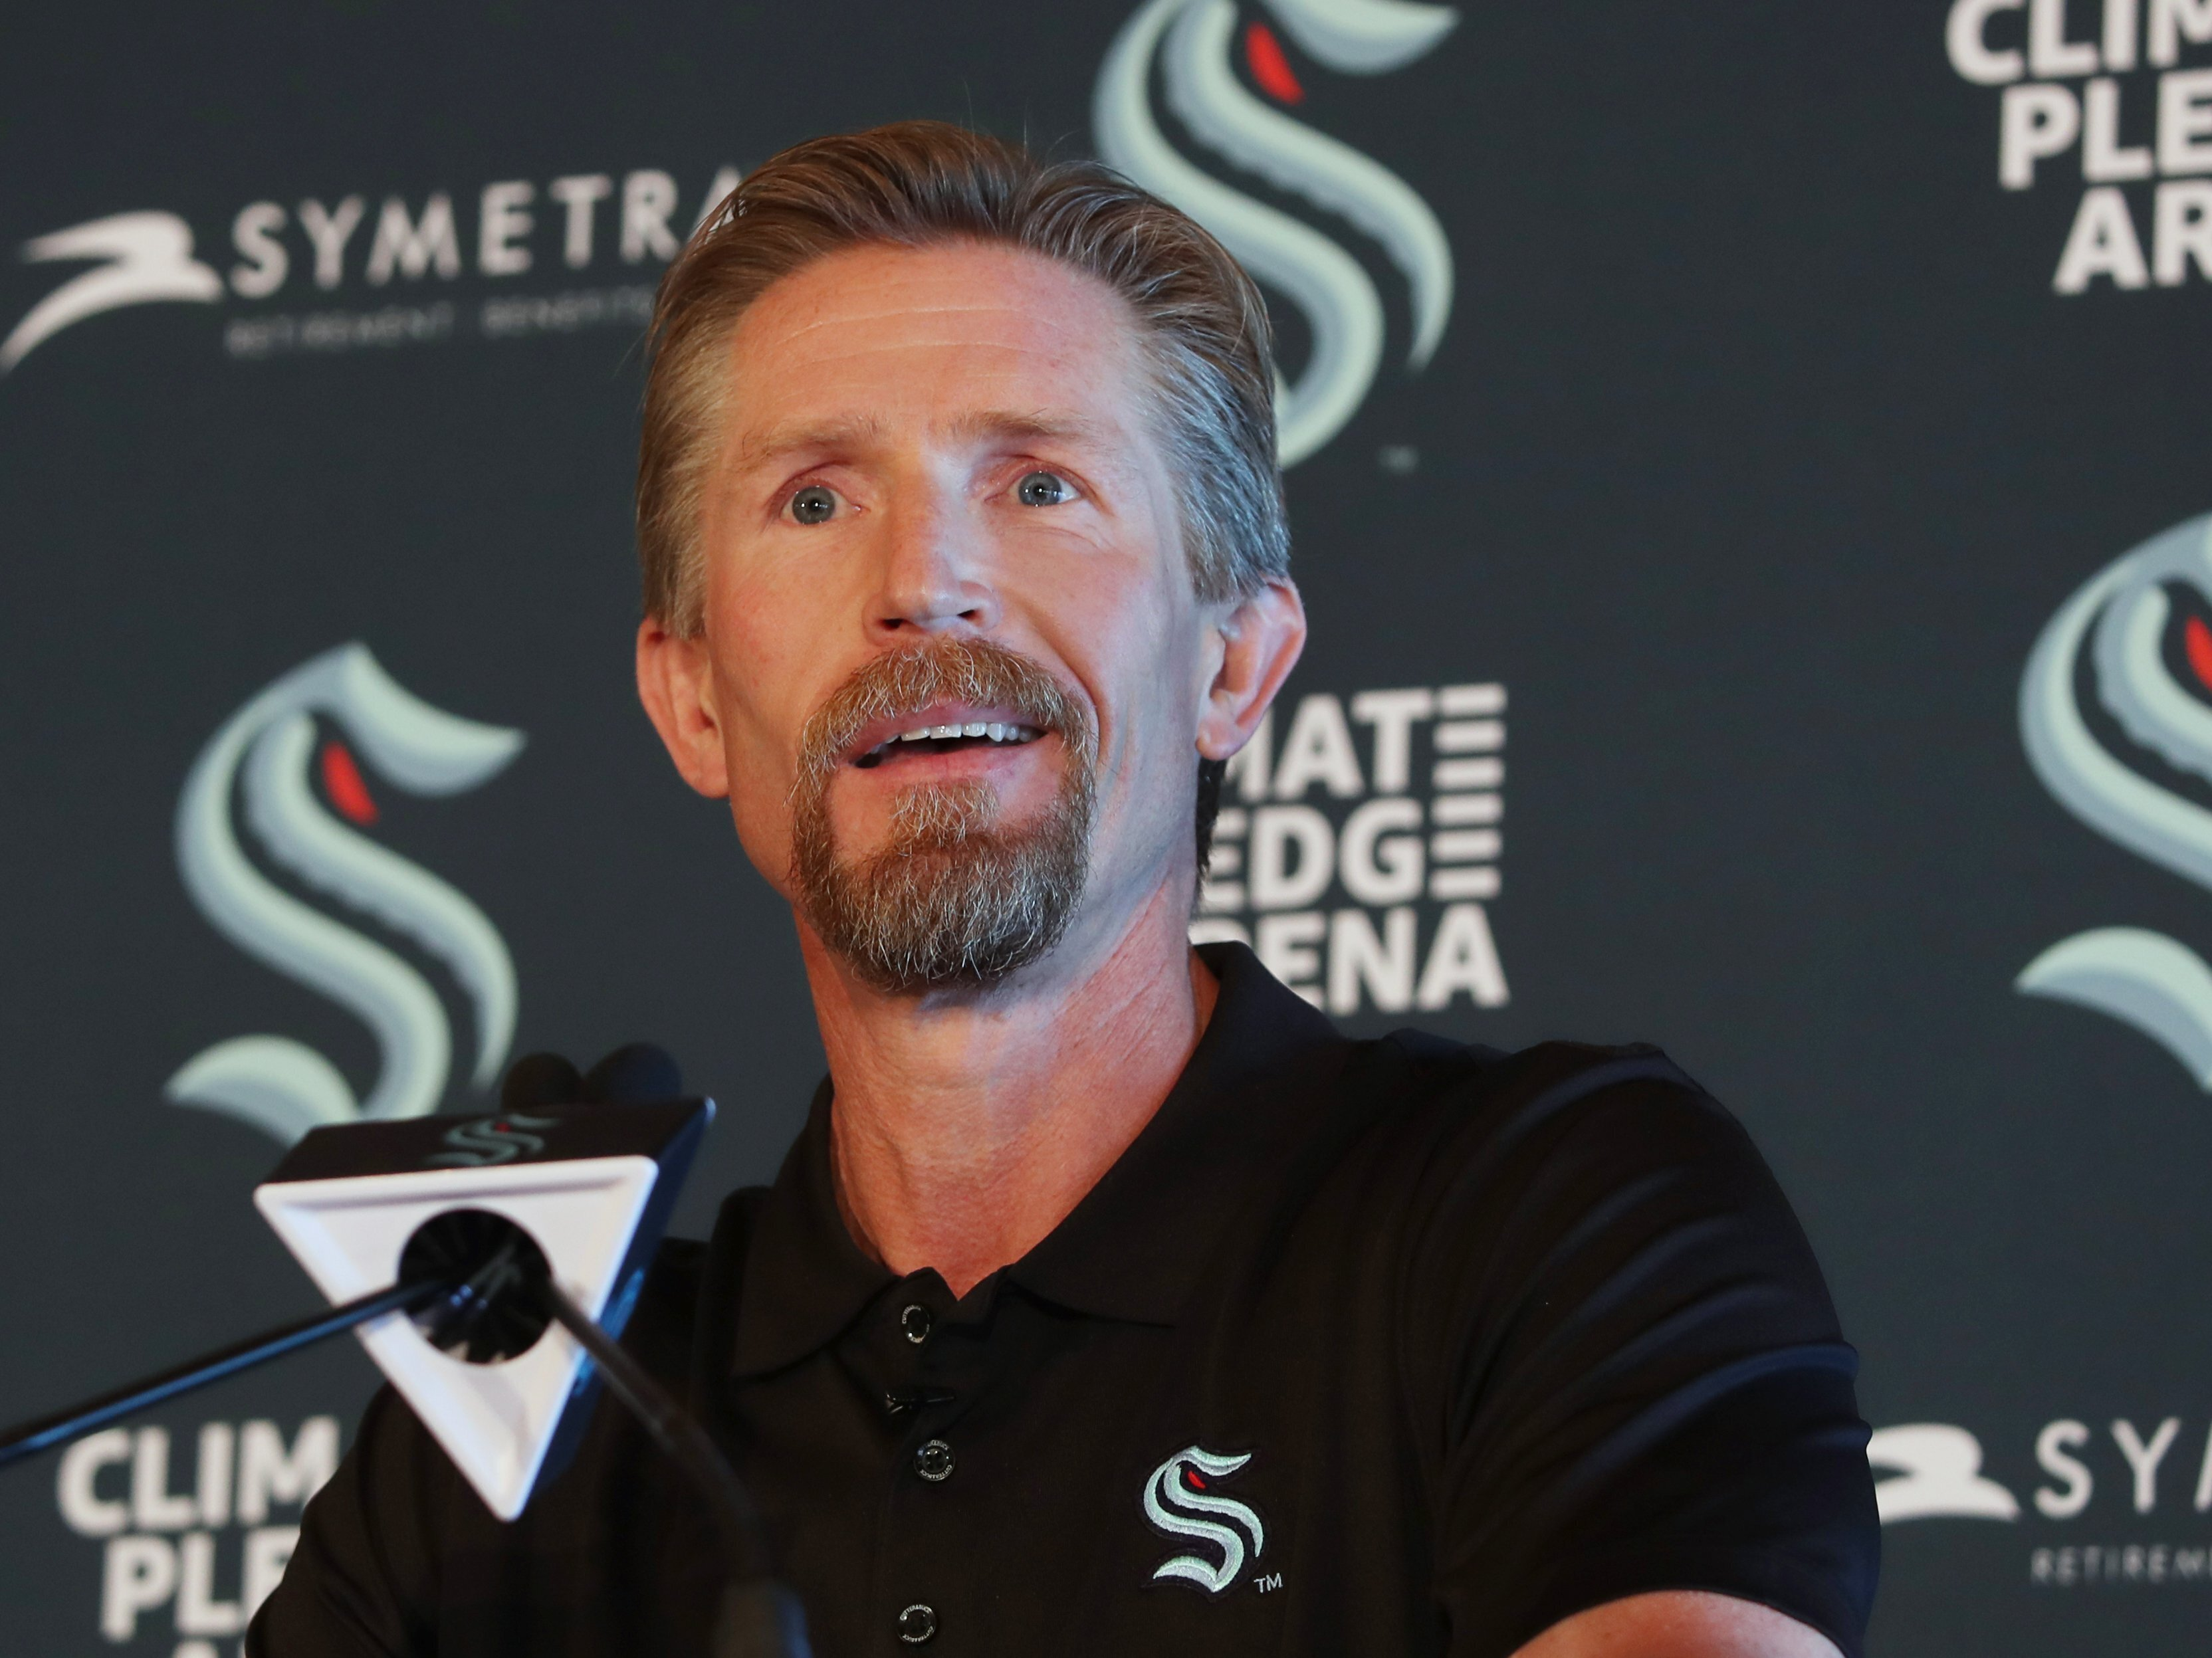 Former Flyers coach Dave Hakstol is taking over the expansion Seattle Kraken ahead of their first season.